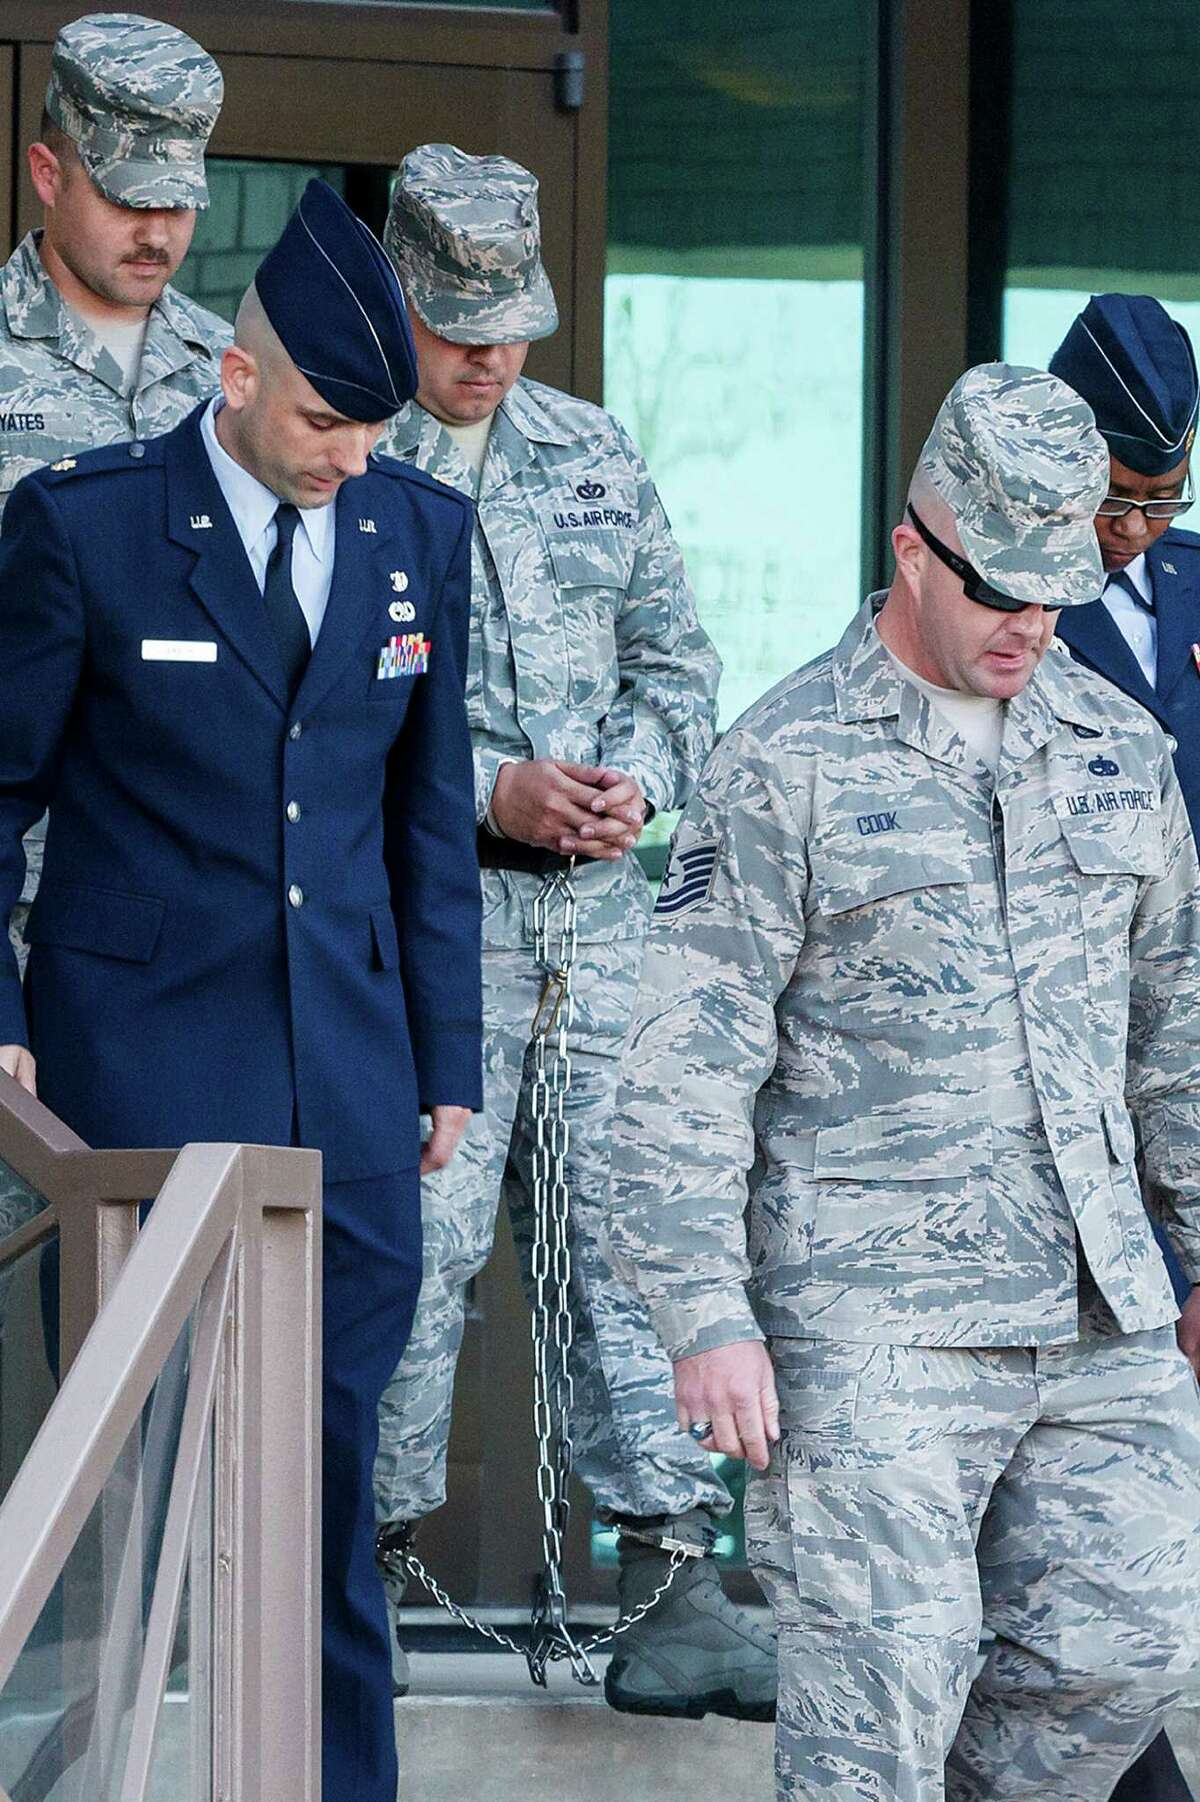 """A shackled Staff Sgt. Eddy Soto (center) is escorted out of the 37th Training Wing headquarters building at Lackland after his Article 32 hearing on Saturday, March 16, 2013. Soto is the second basic training instructor to be found guilty of rape. He was also accused of having an """"unprofessional relationship"""" with a female trainee and of sexually assaulting two female former trainees."""